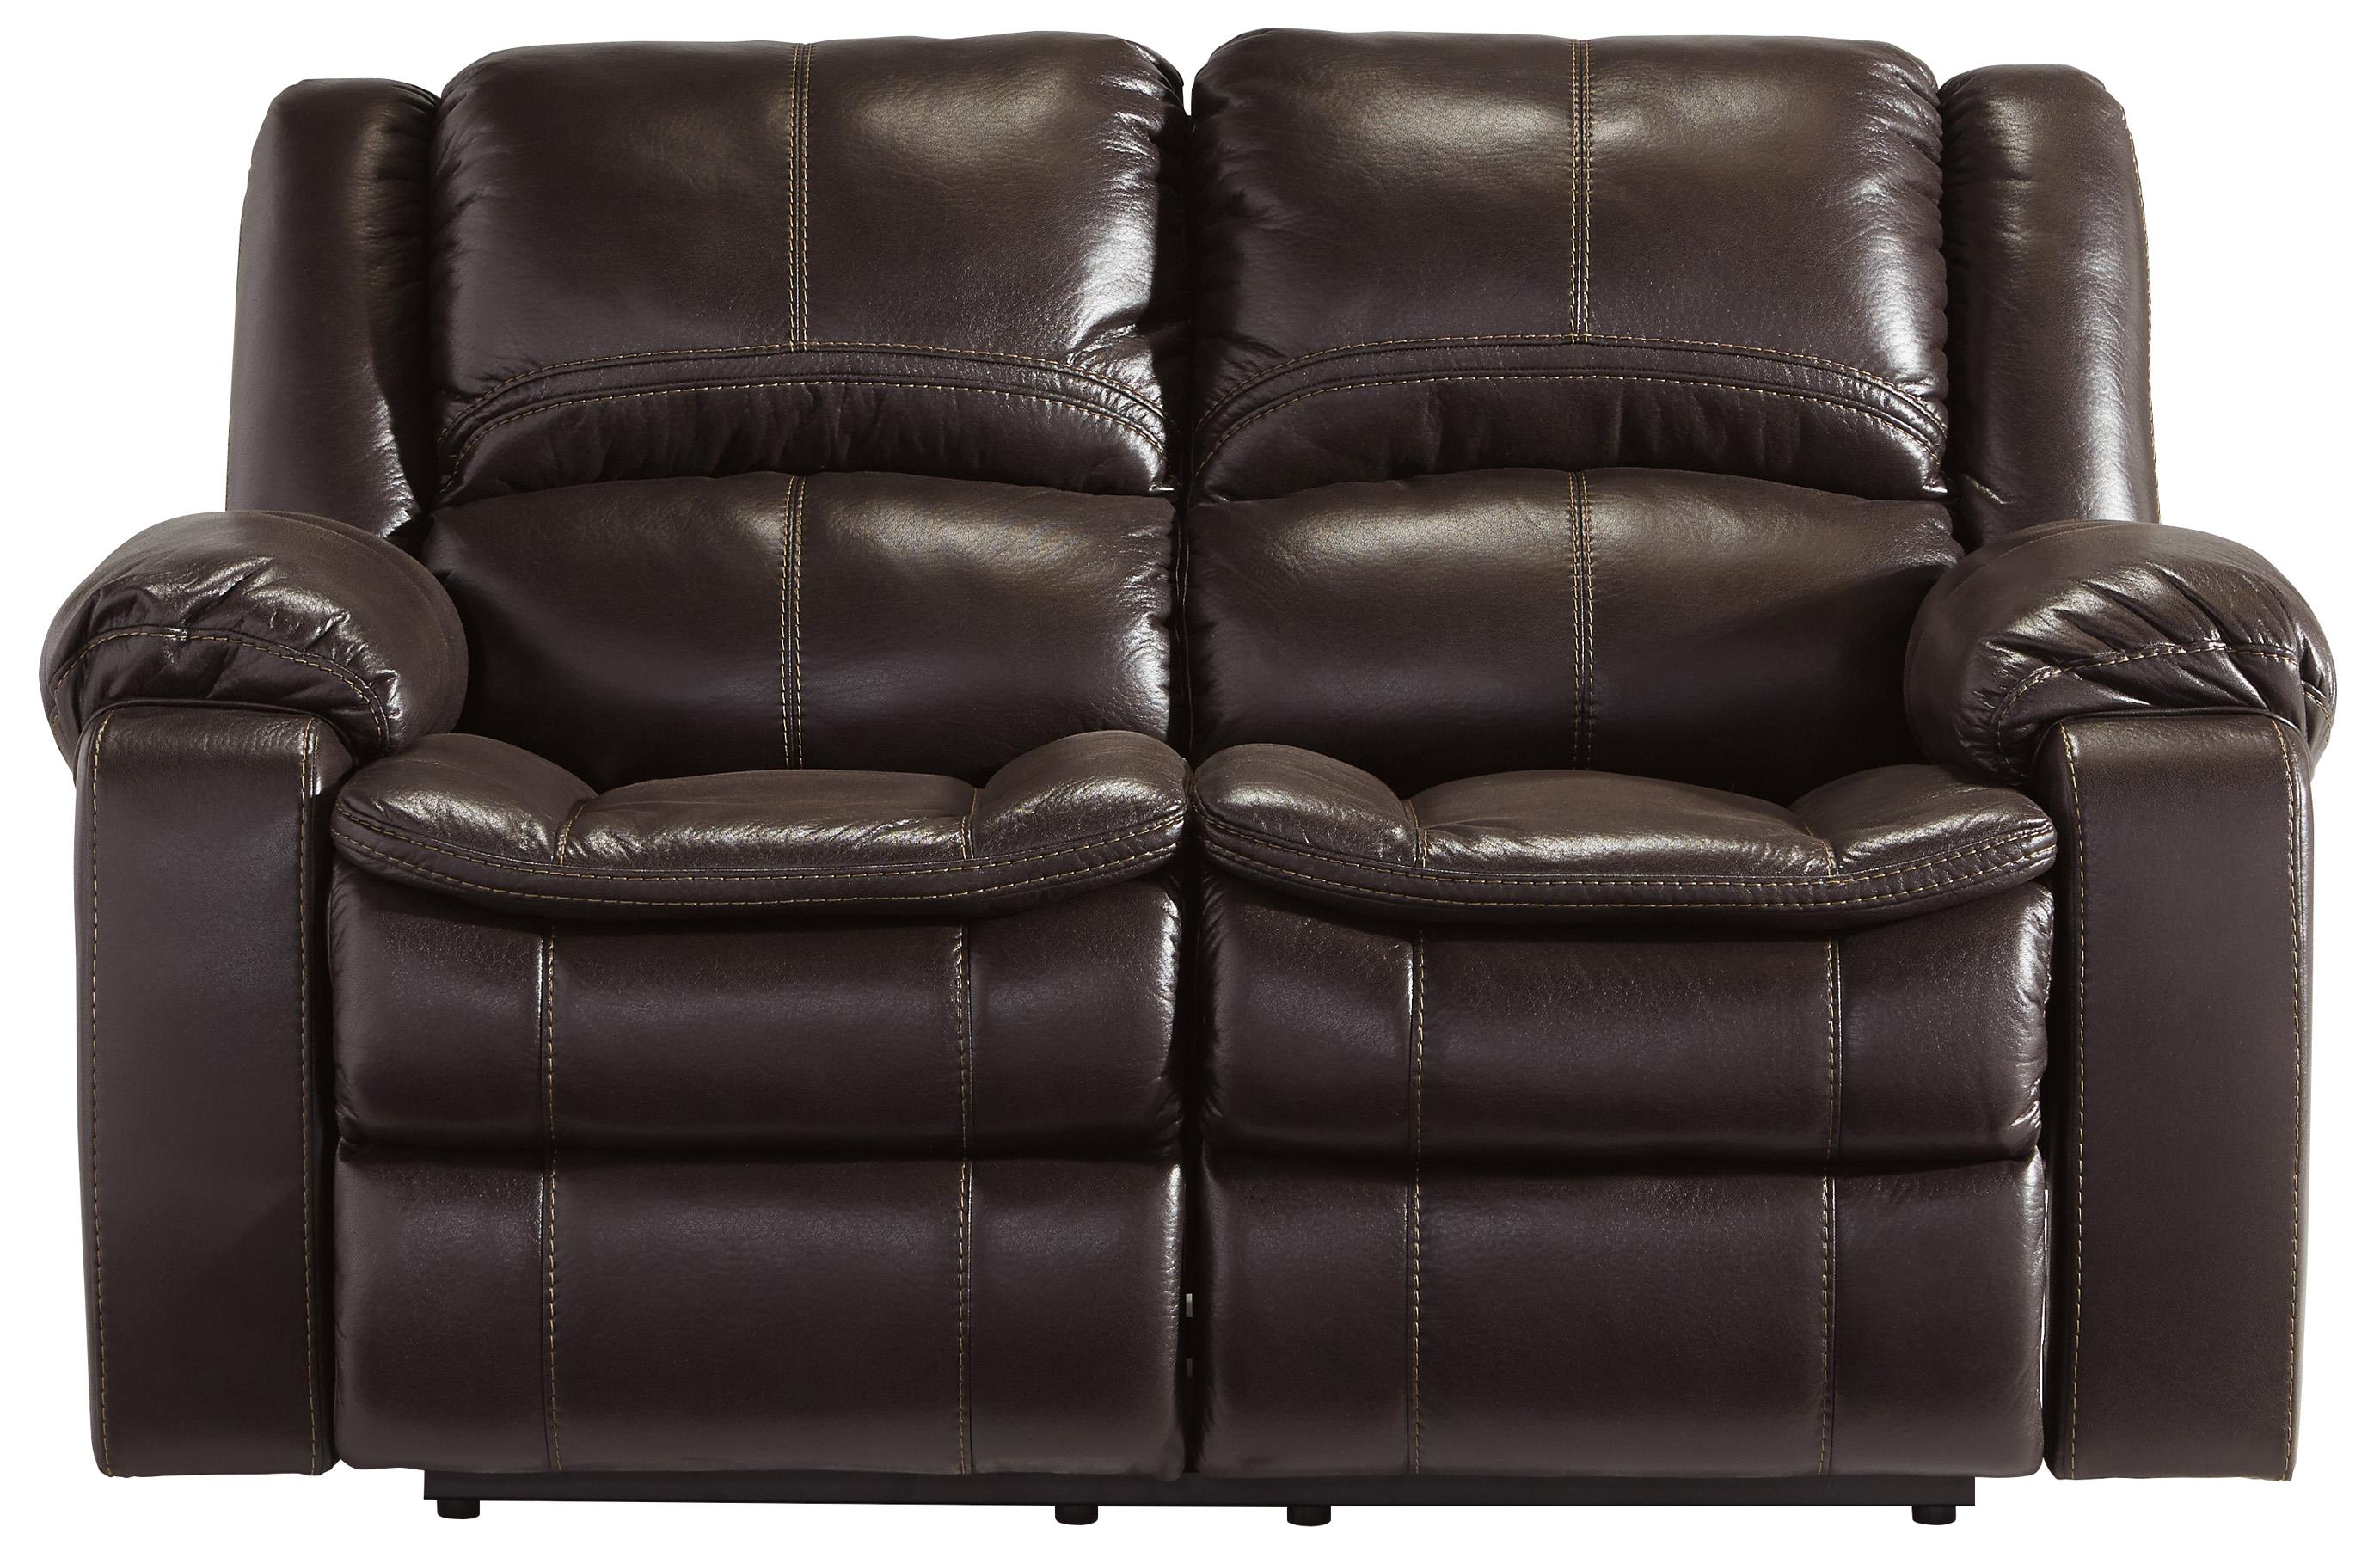 Signature Design by Ashley Long Knight Reclining Power Loveseat - Item Number: 8890574